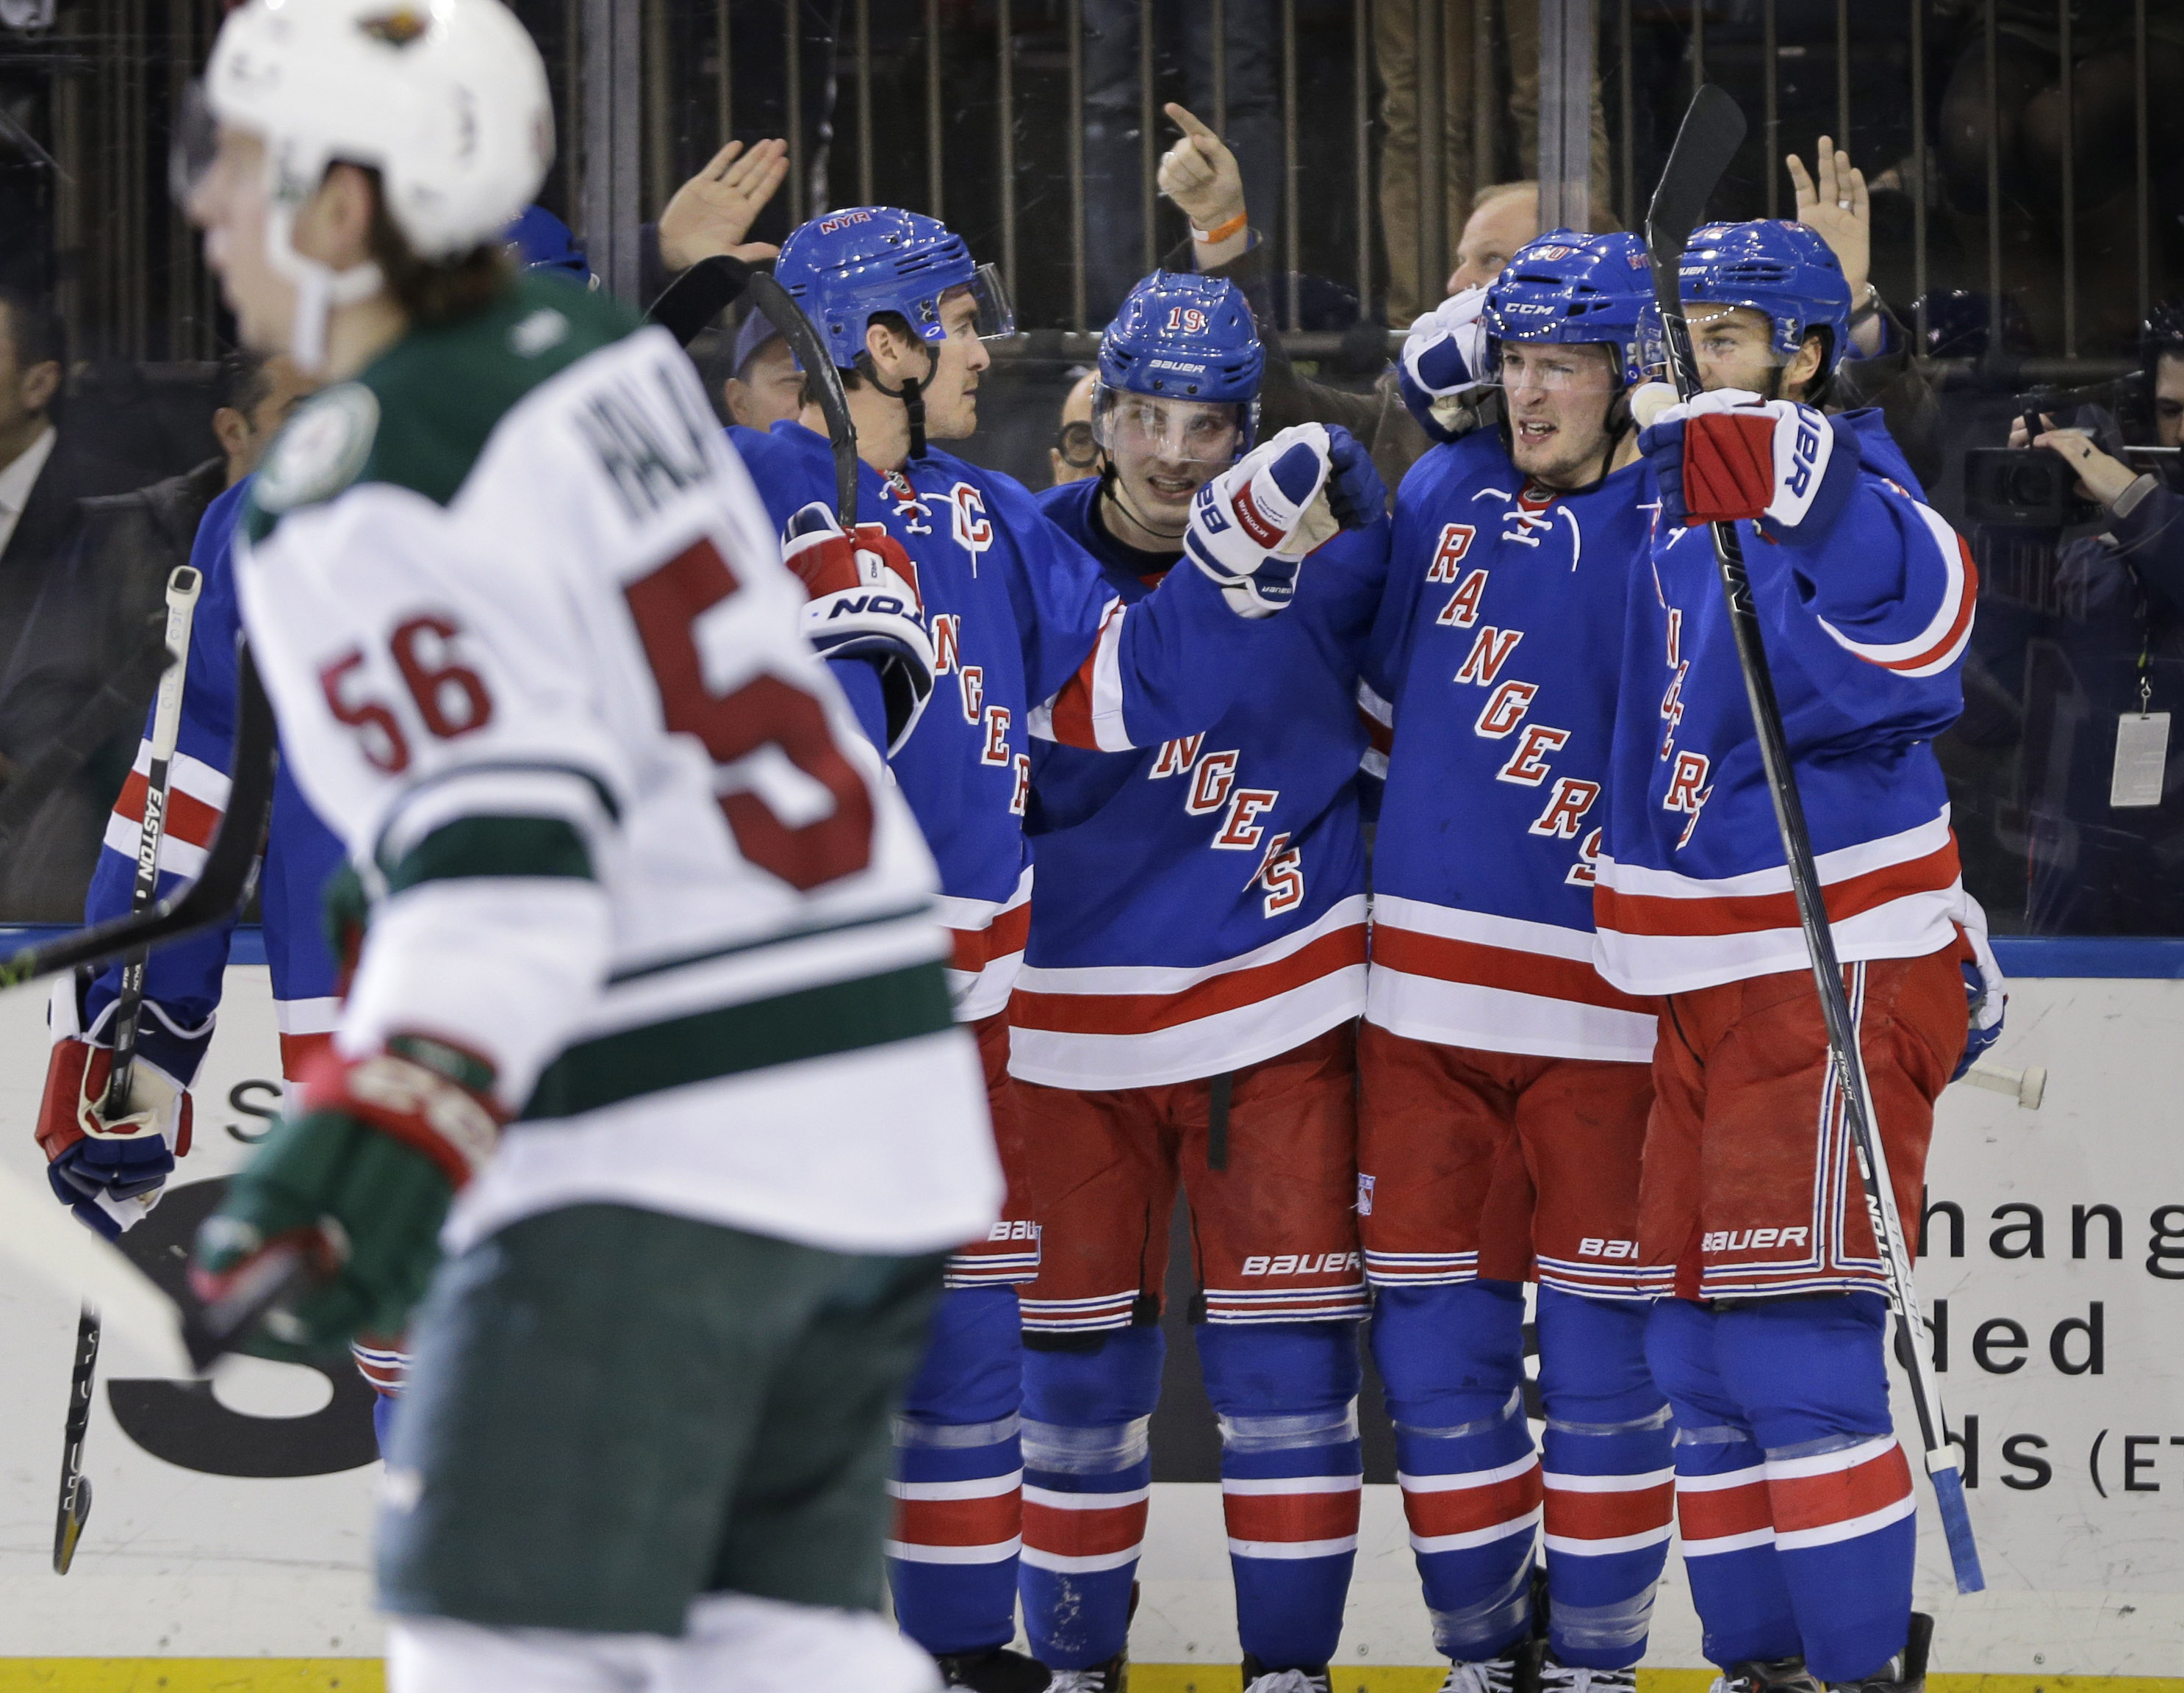 New York Rangers center J.T. Miller (10), second from right, celebrates his goal with teammates during the second period of the NHL hockey game against the Minnesota Wild, Thursday, Feb. 4, 2016, in New York. (AP Photo/Seth Wenig)